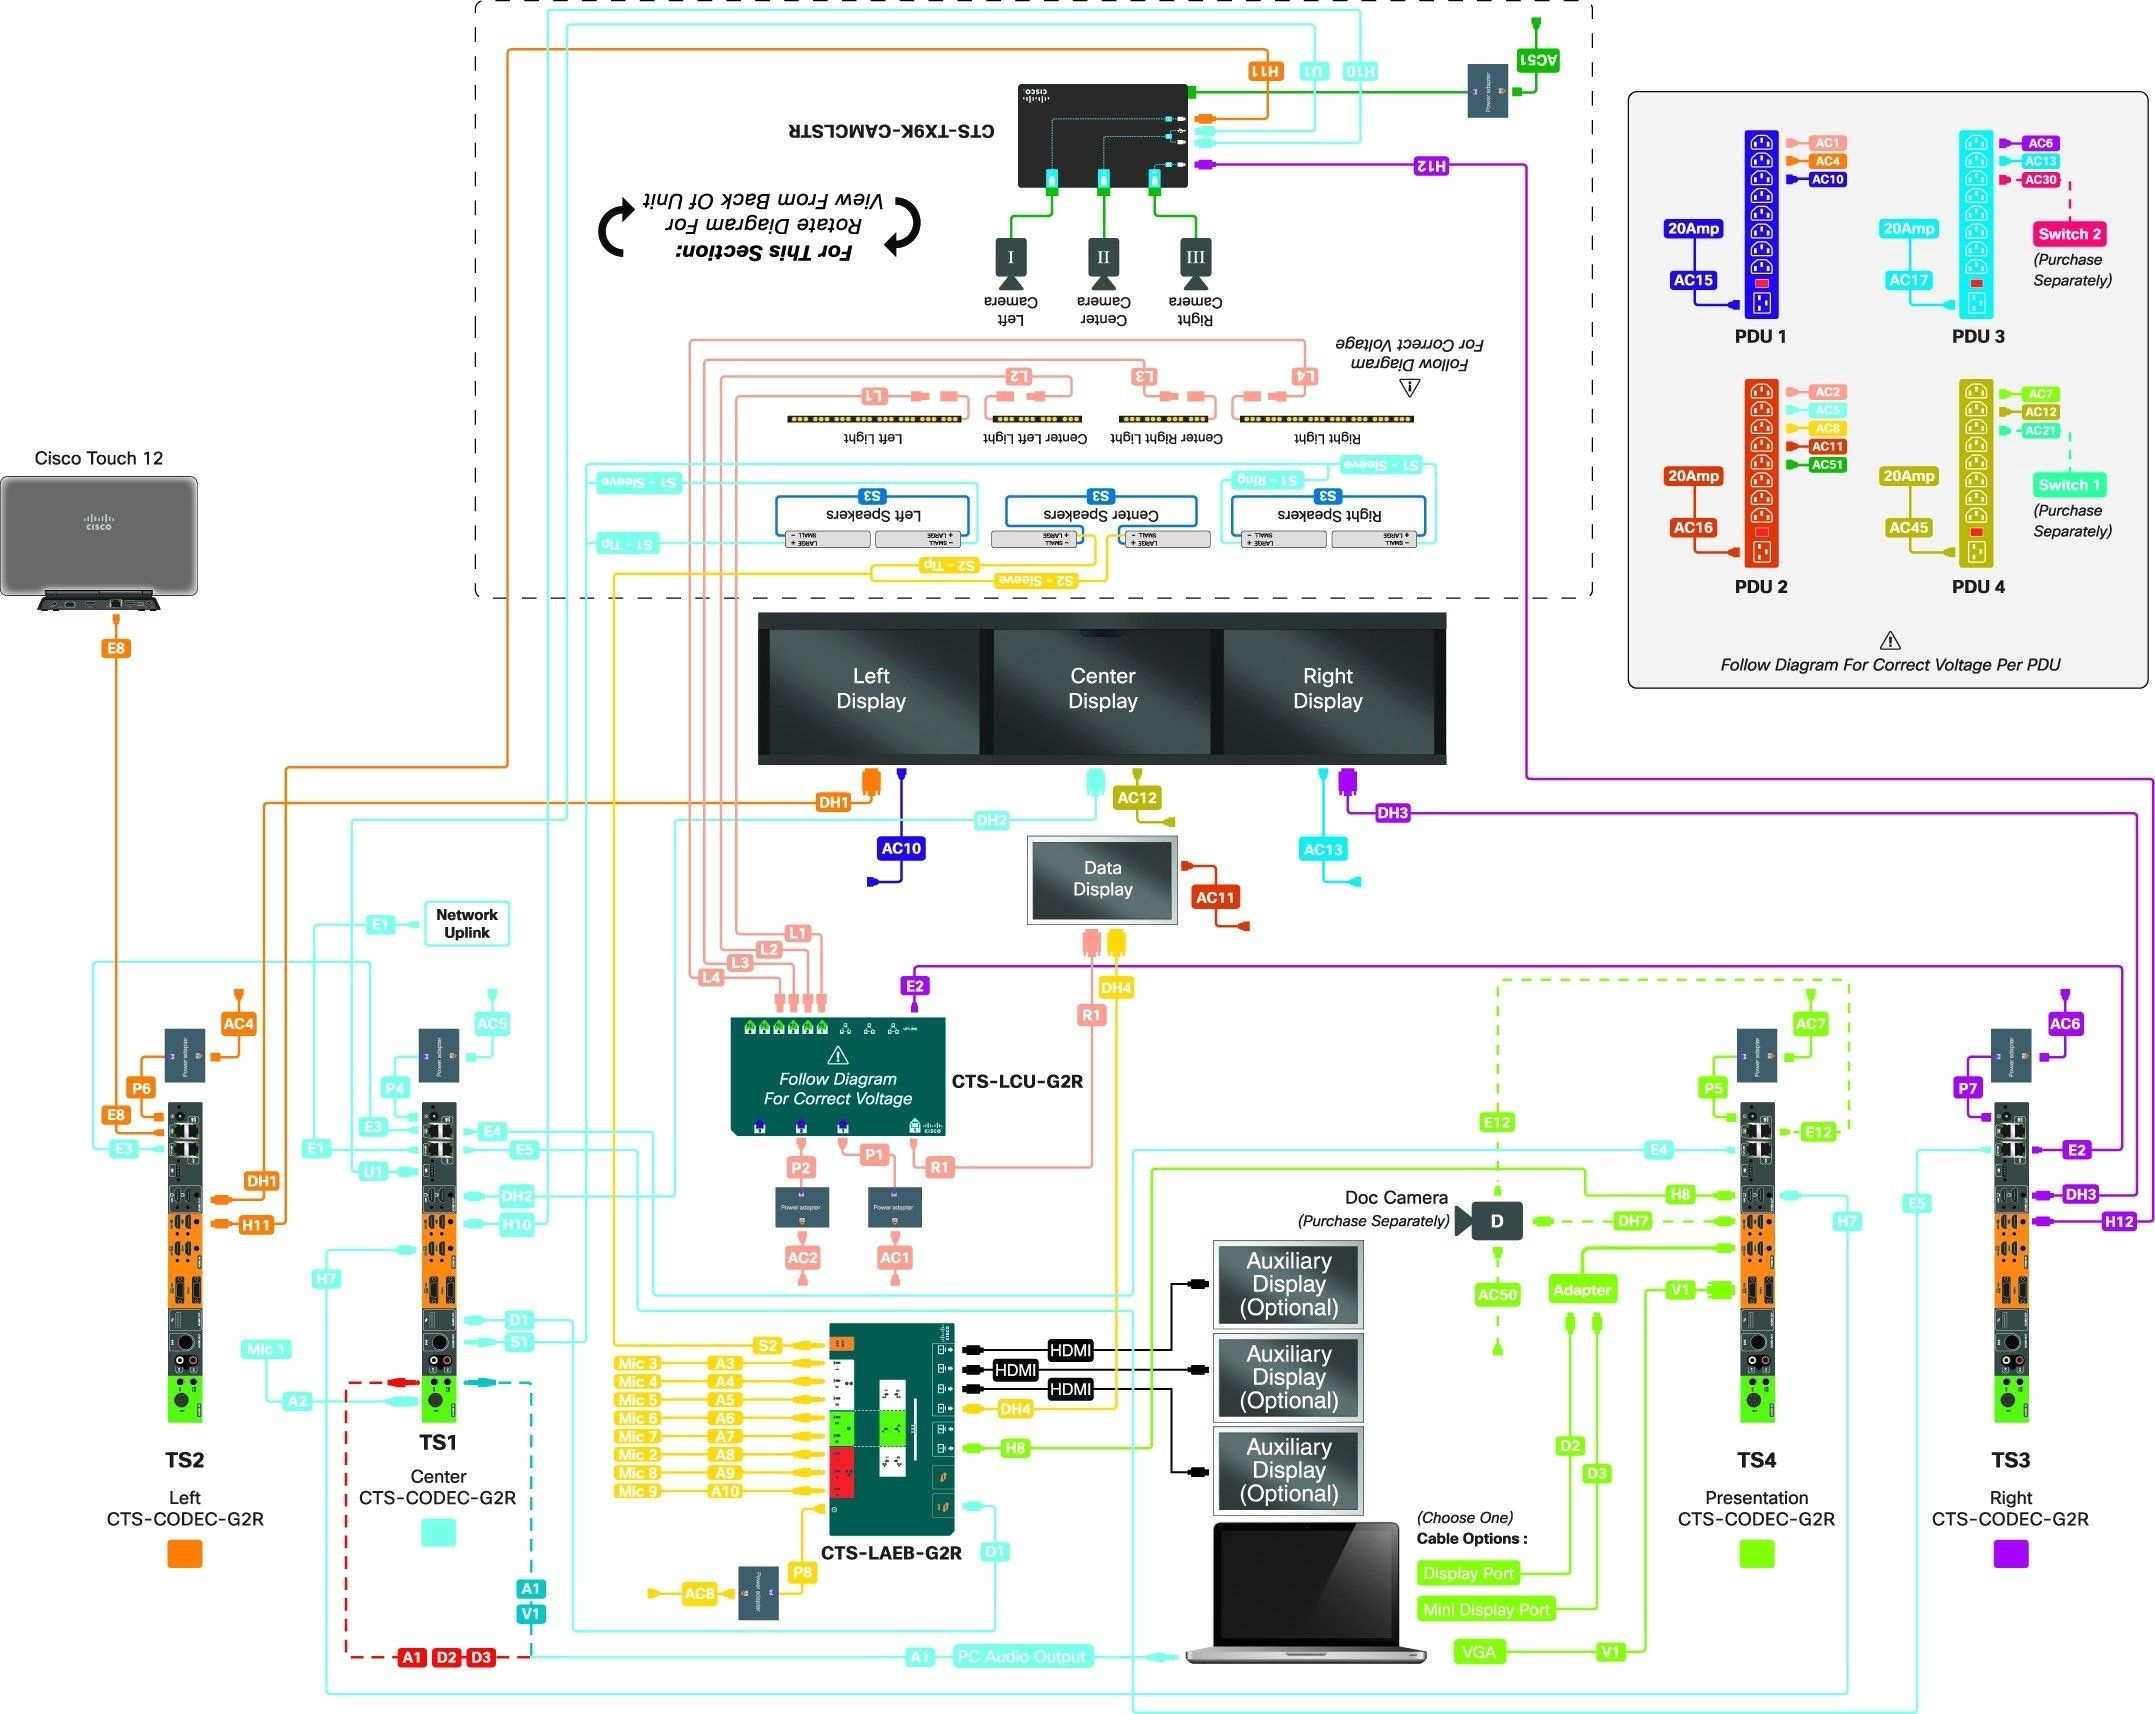 Hdmi Wire Color Hdmi Cable Wiring Diagram from i.pinimg.com